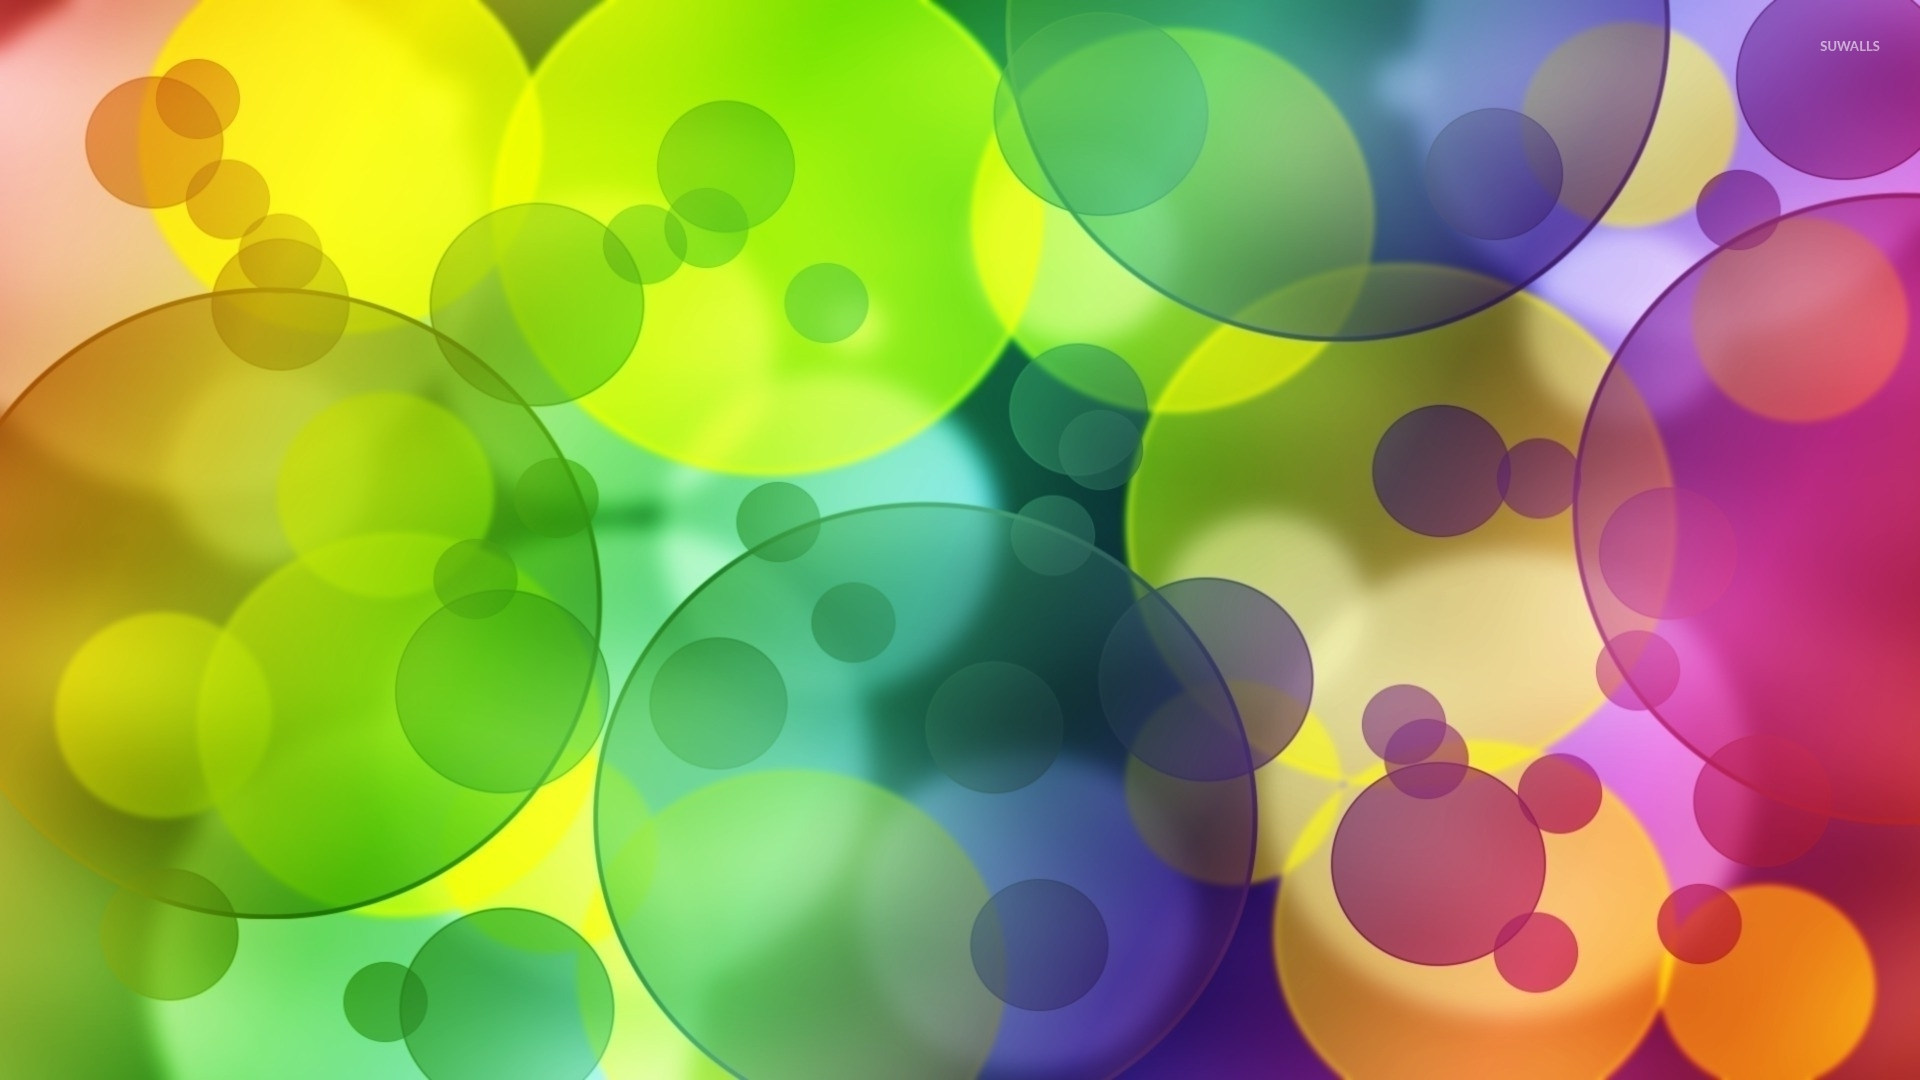 colorful transparent bubbles wallpaper - abstract wallpapers - #51204